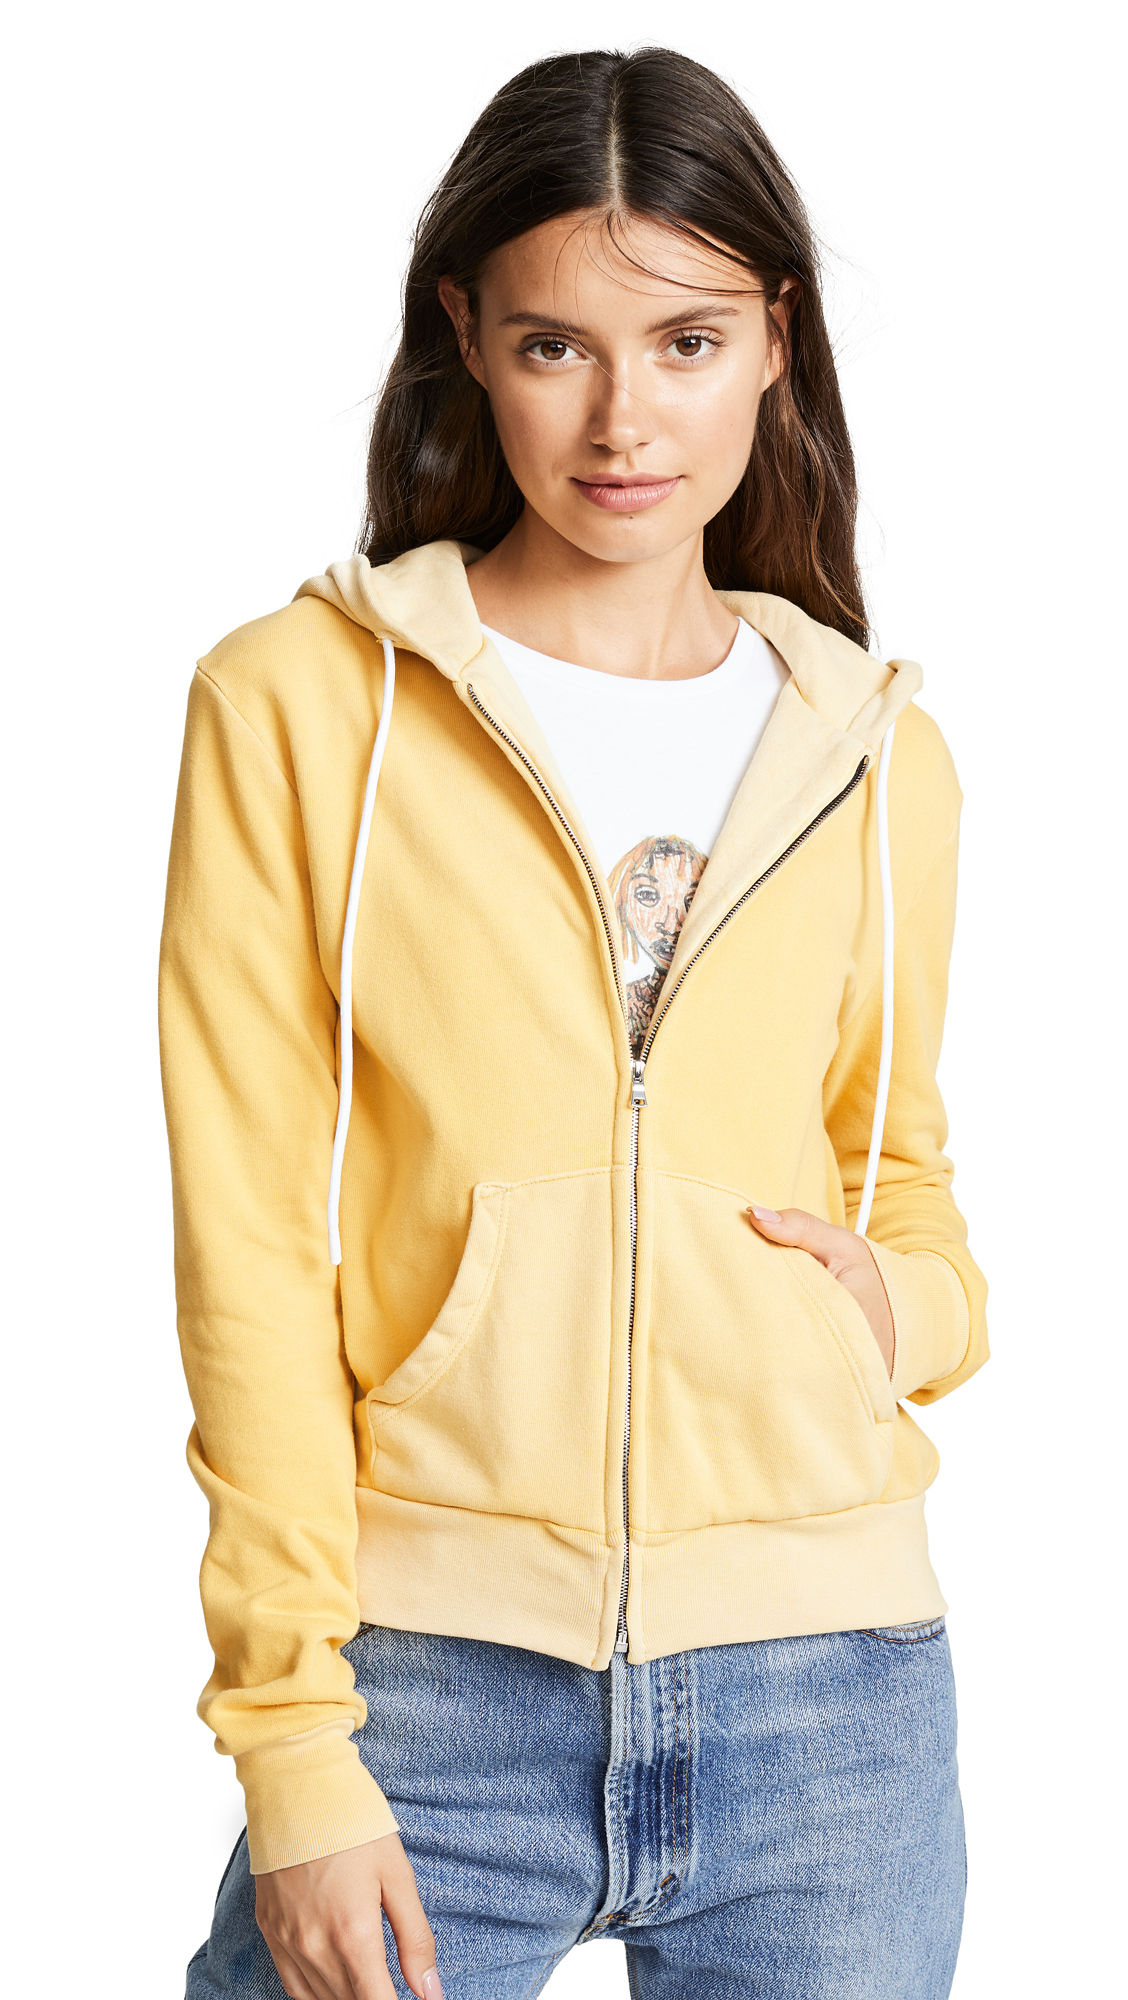 Cotton Citizen Aspen Zip Hoodie In Vintage Jackfruit